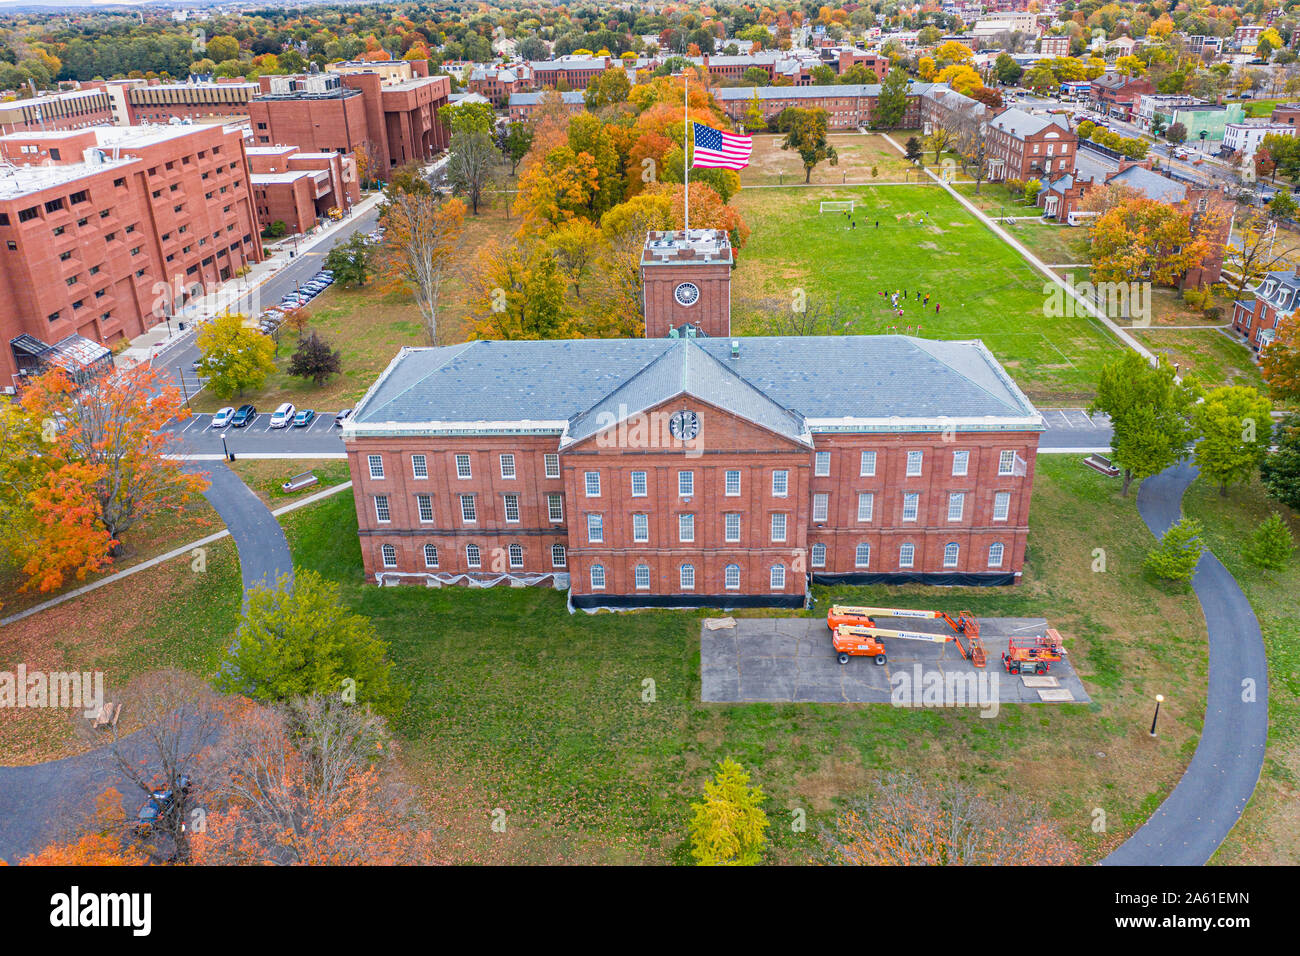 Springfield Armory National Historic Site, Springfield, Massachusetts, EE.UU. Foto de stock